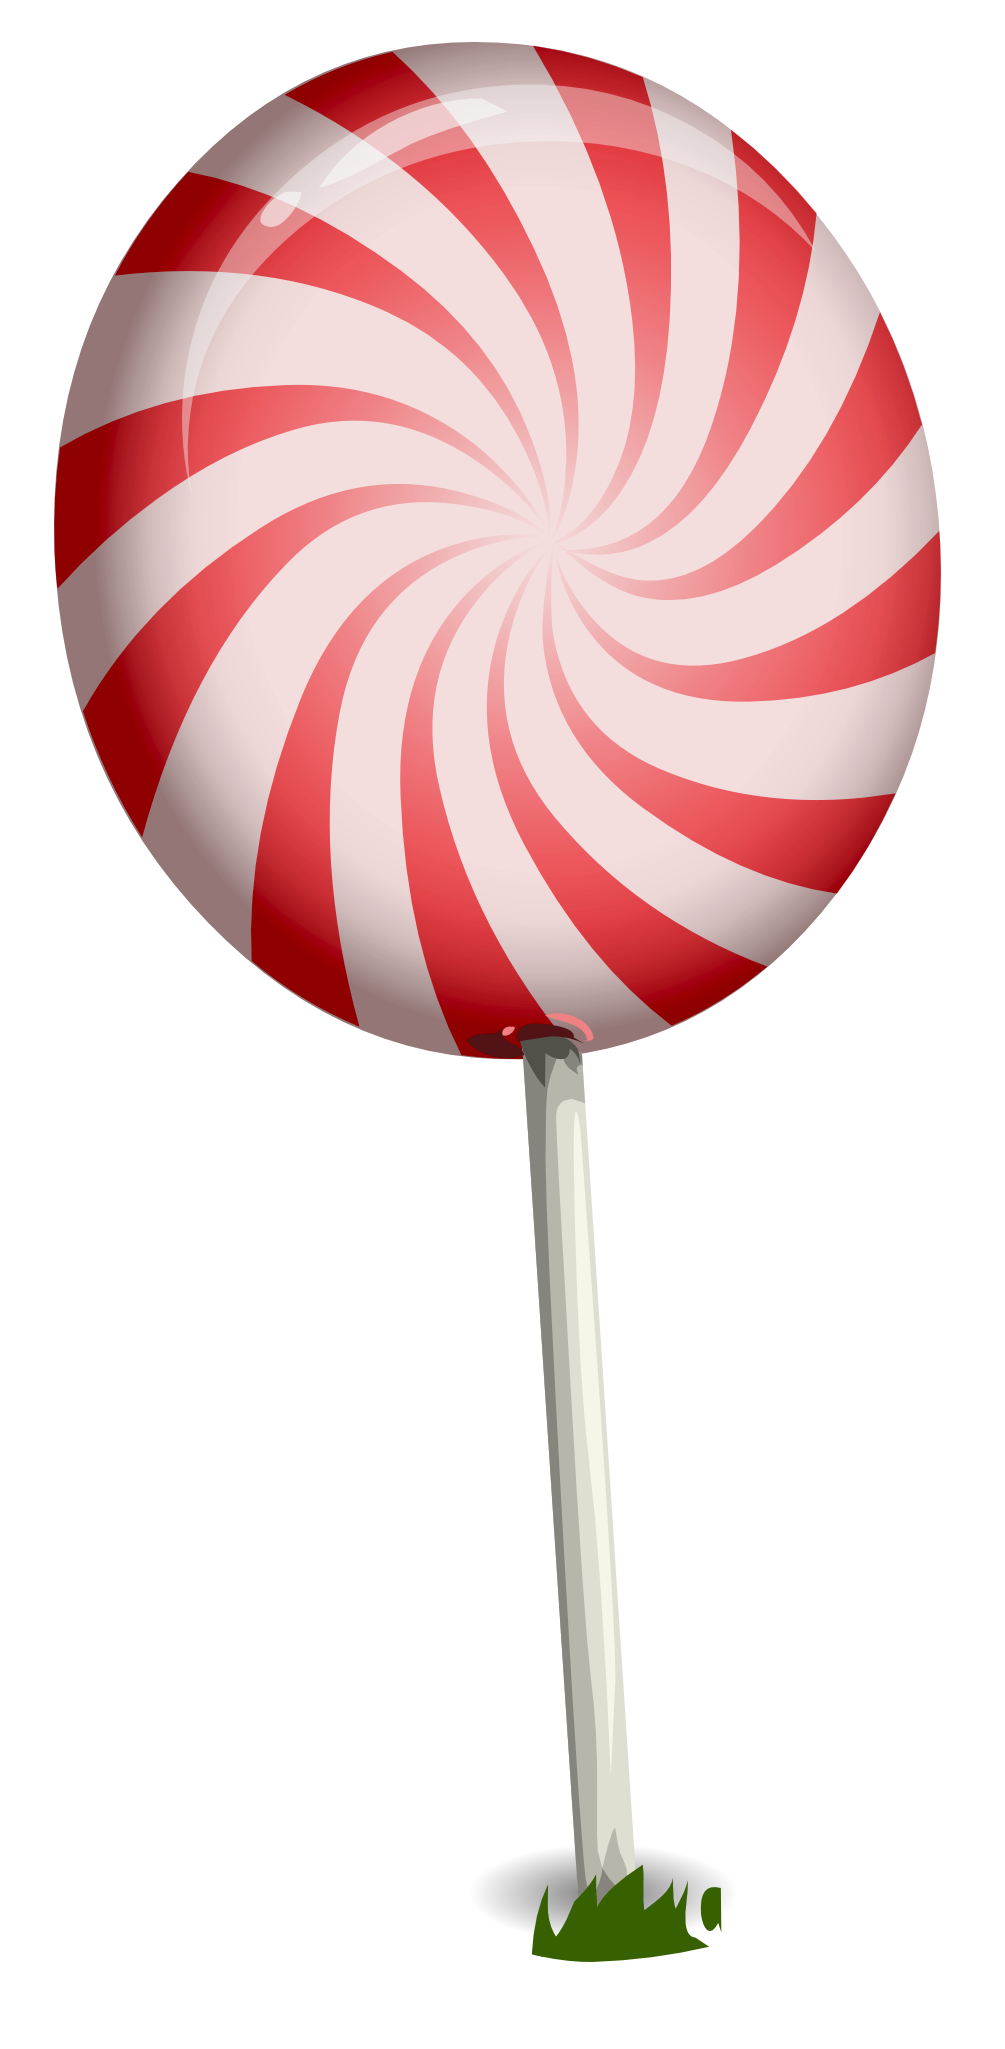 Candy png. Images pngpix lollipop transparent